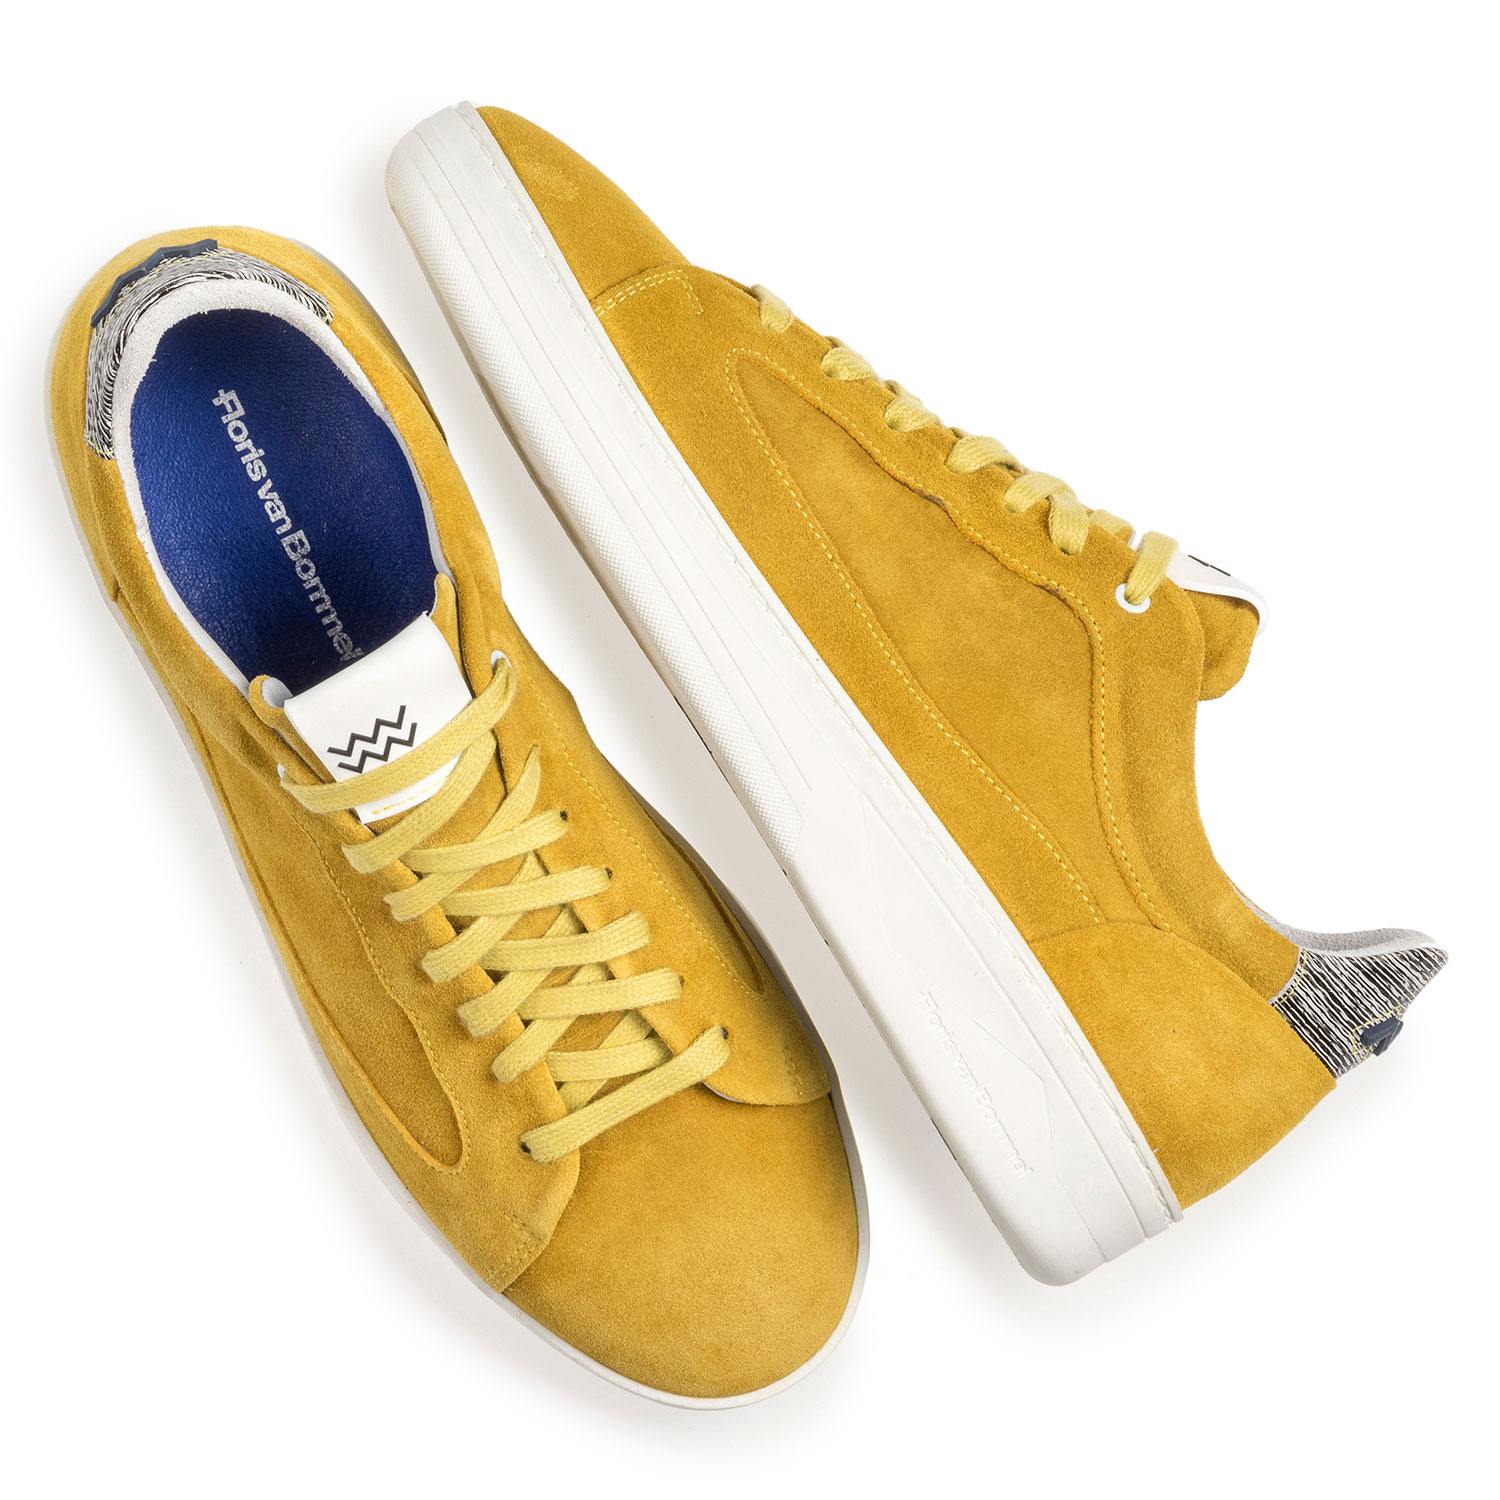 13265/02 - Yellow suede leather sneaker